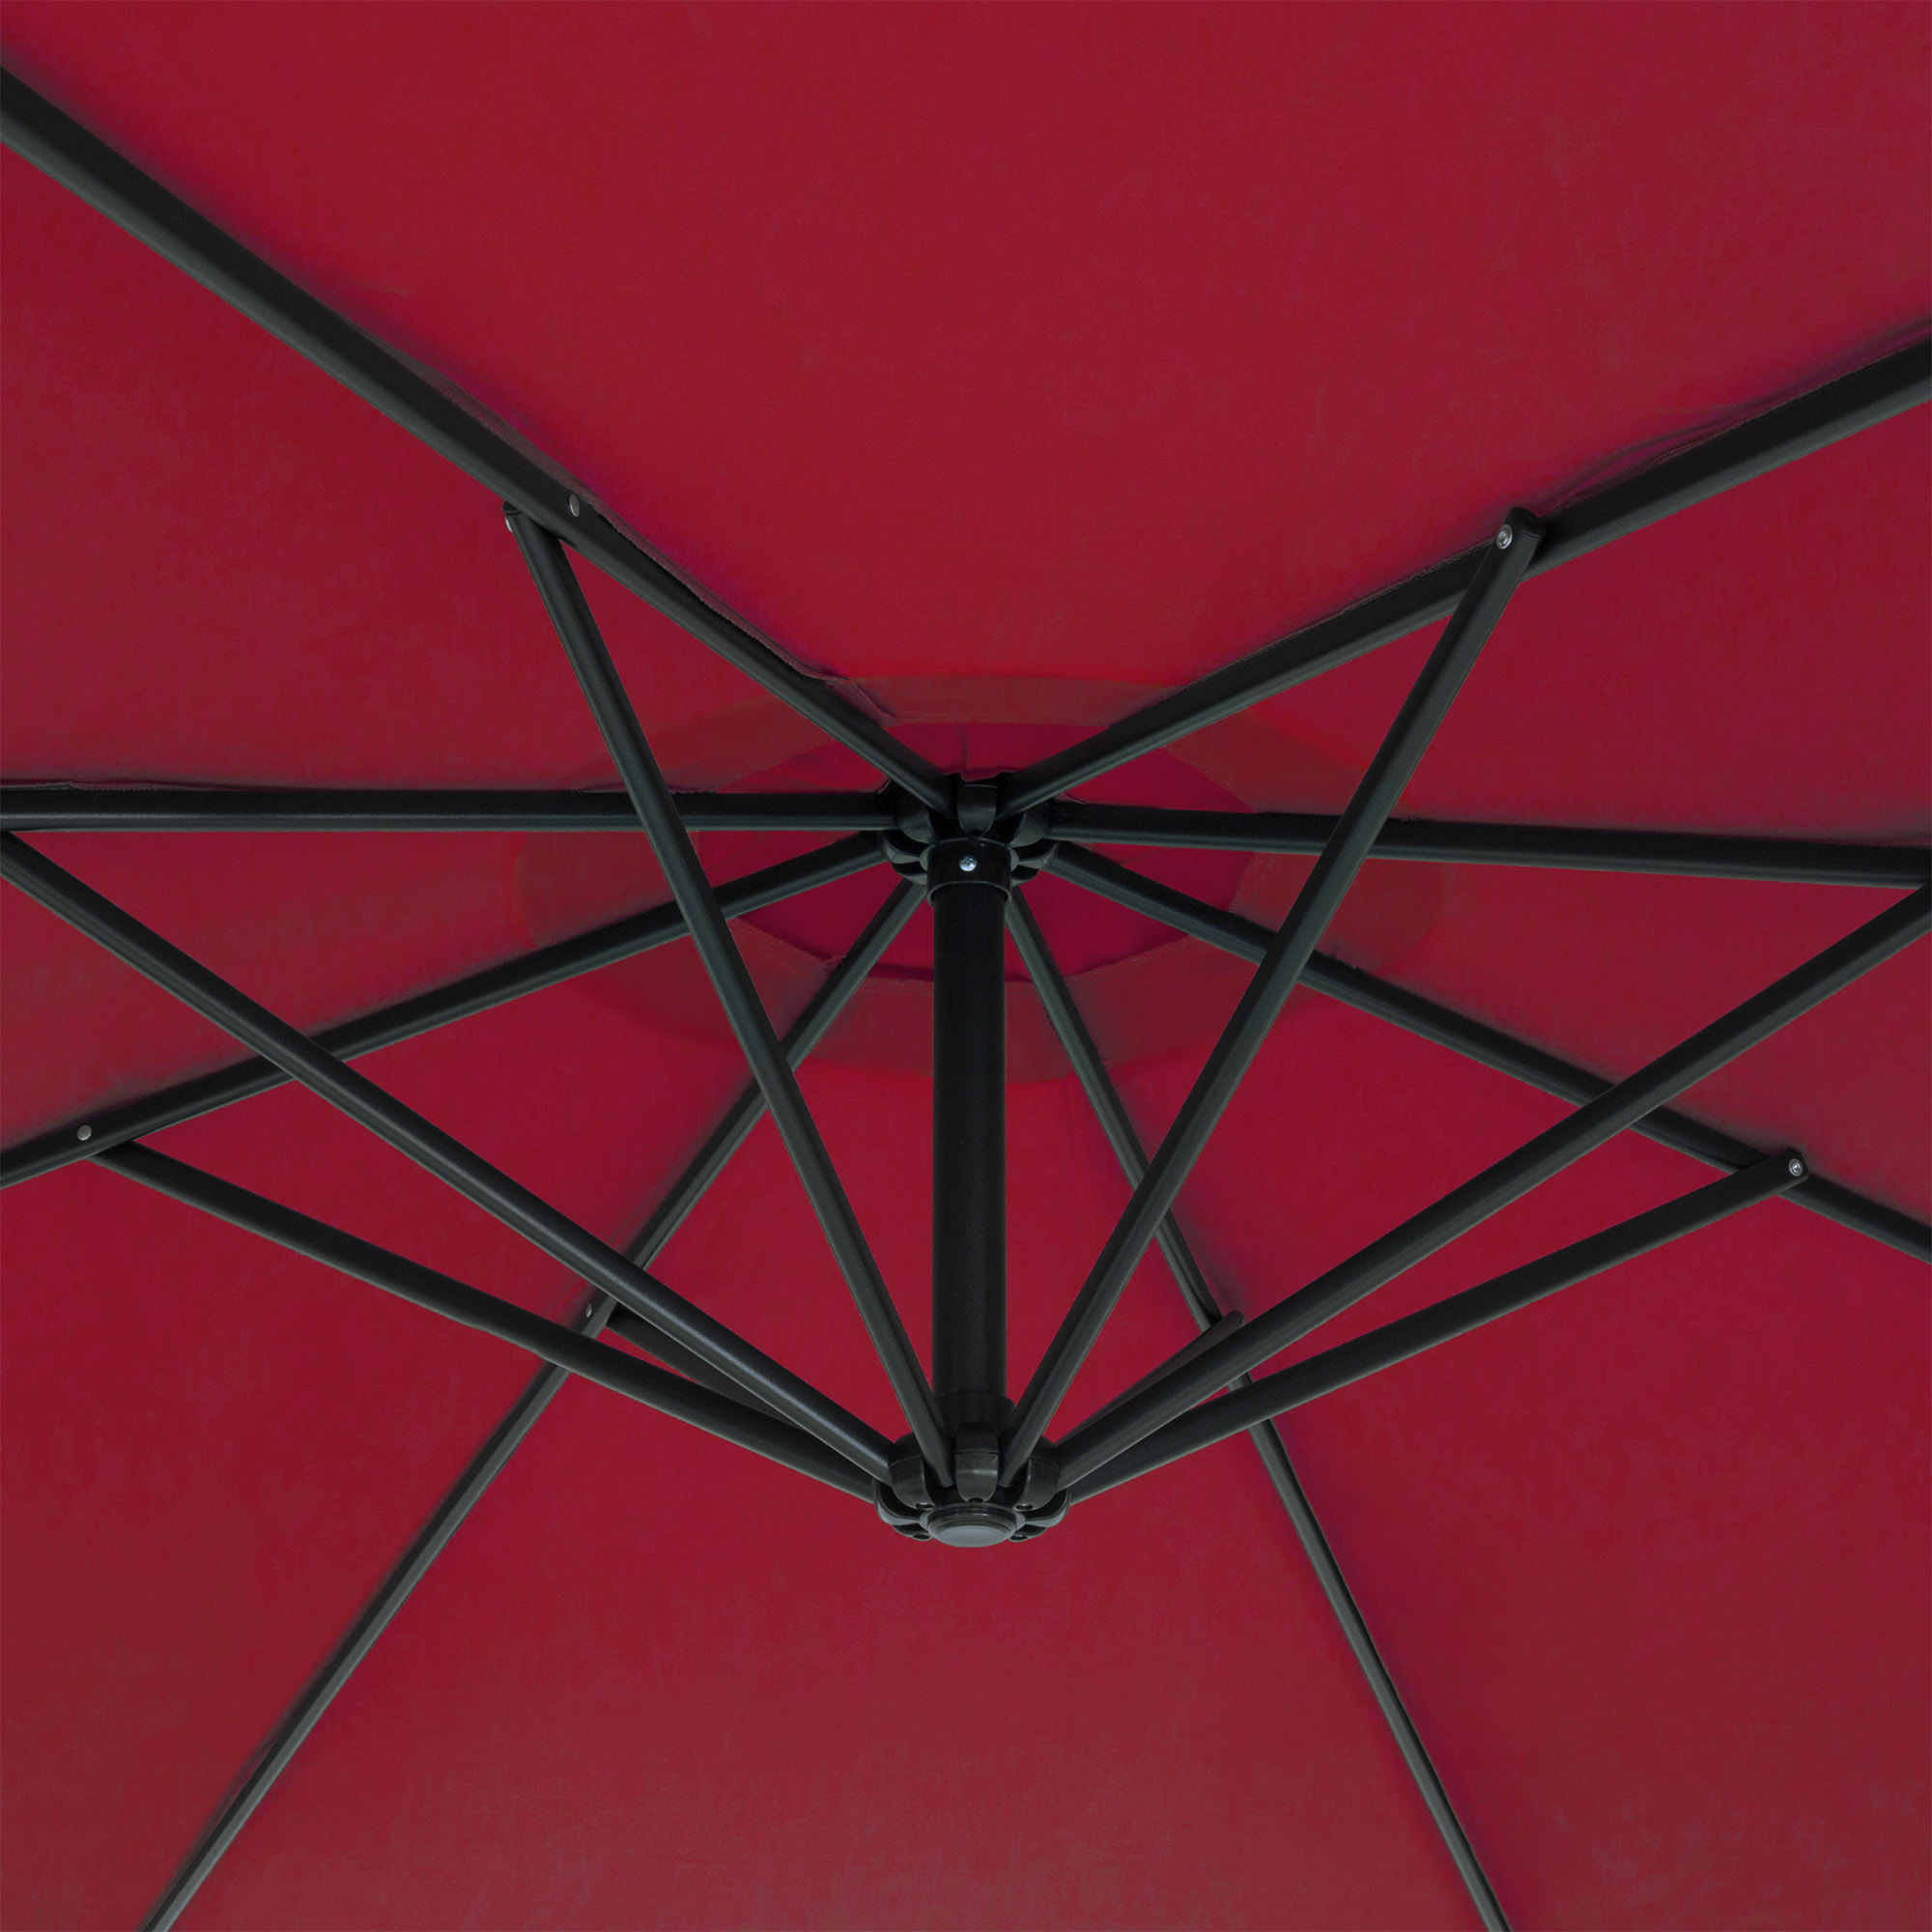 BCP-10ft-Offset-Hanging-Market-Patio-Umbrella-w-Tilt-Adjustment-Hand-Crank thumbnail 40